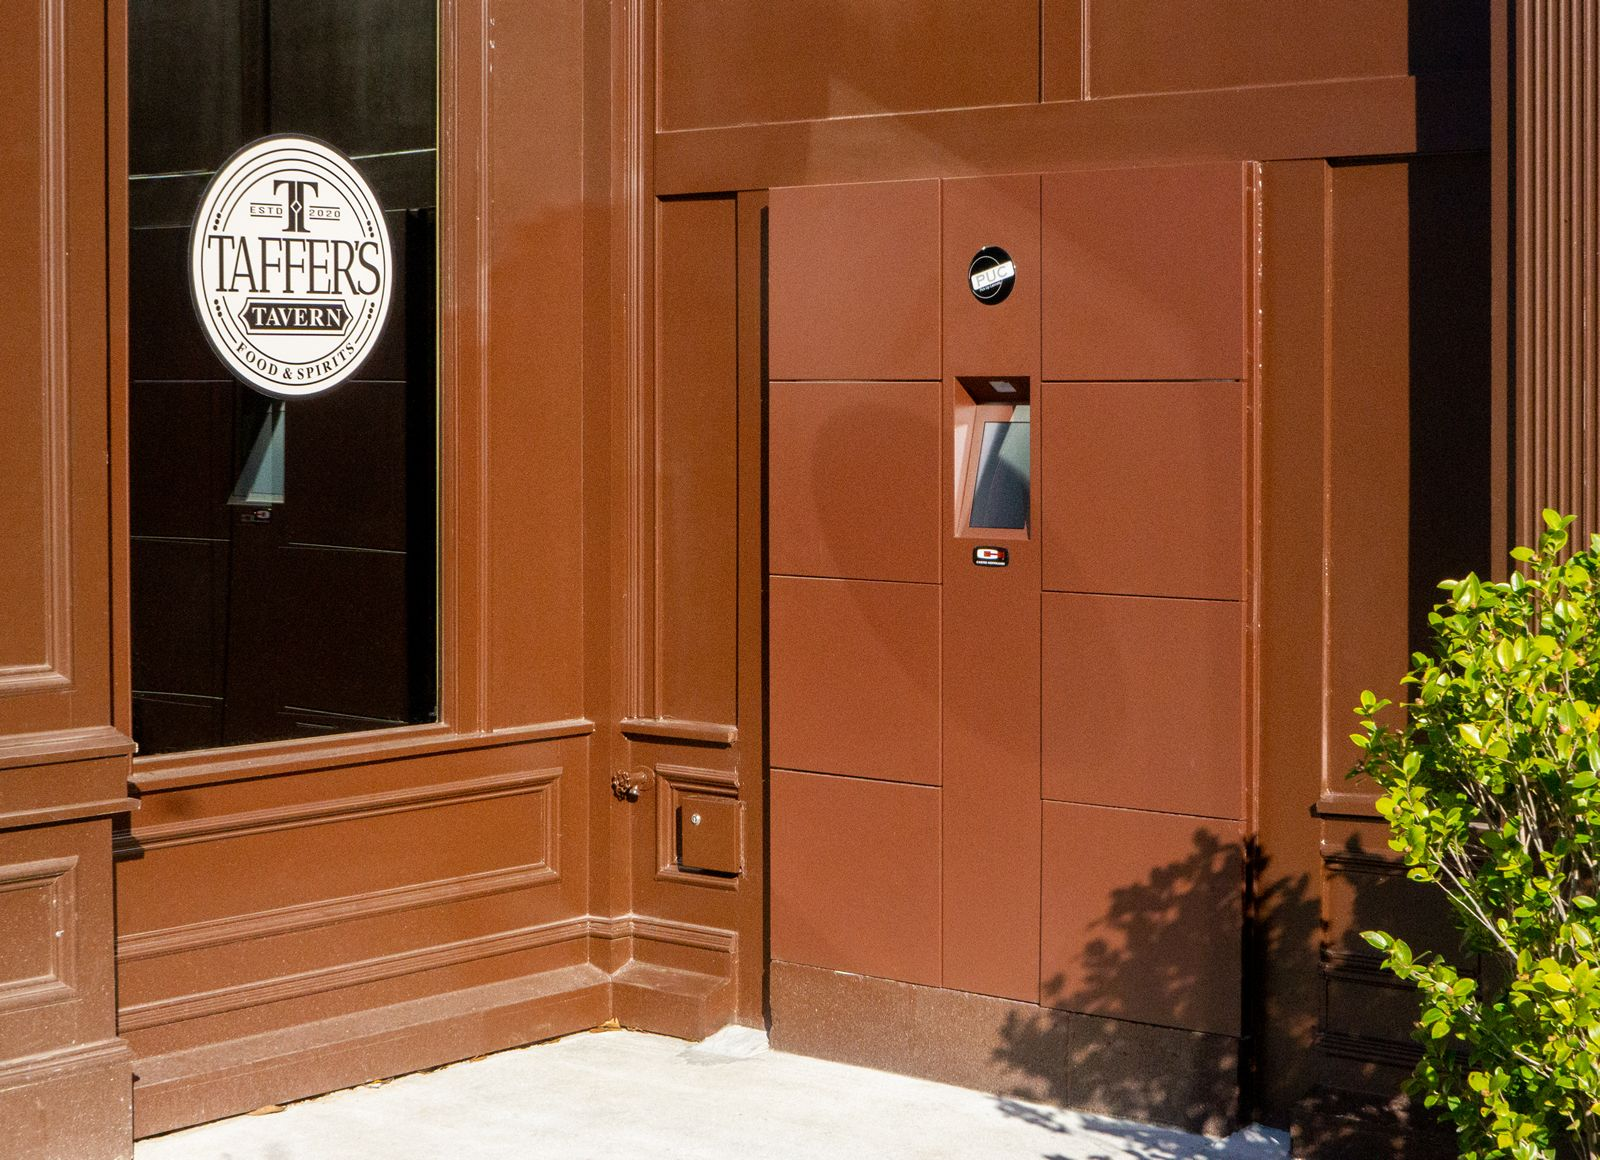 Taffer's Tavern introduces thru-wall, contactless locker system in collaboration with Carter-Hoffmann and Perfect Company